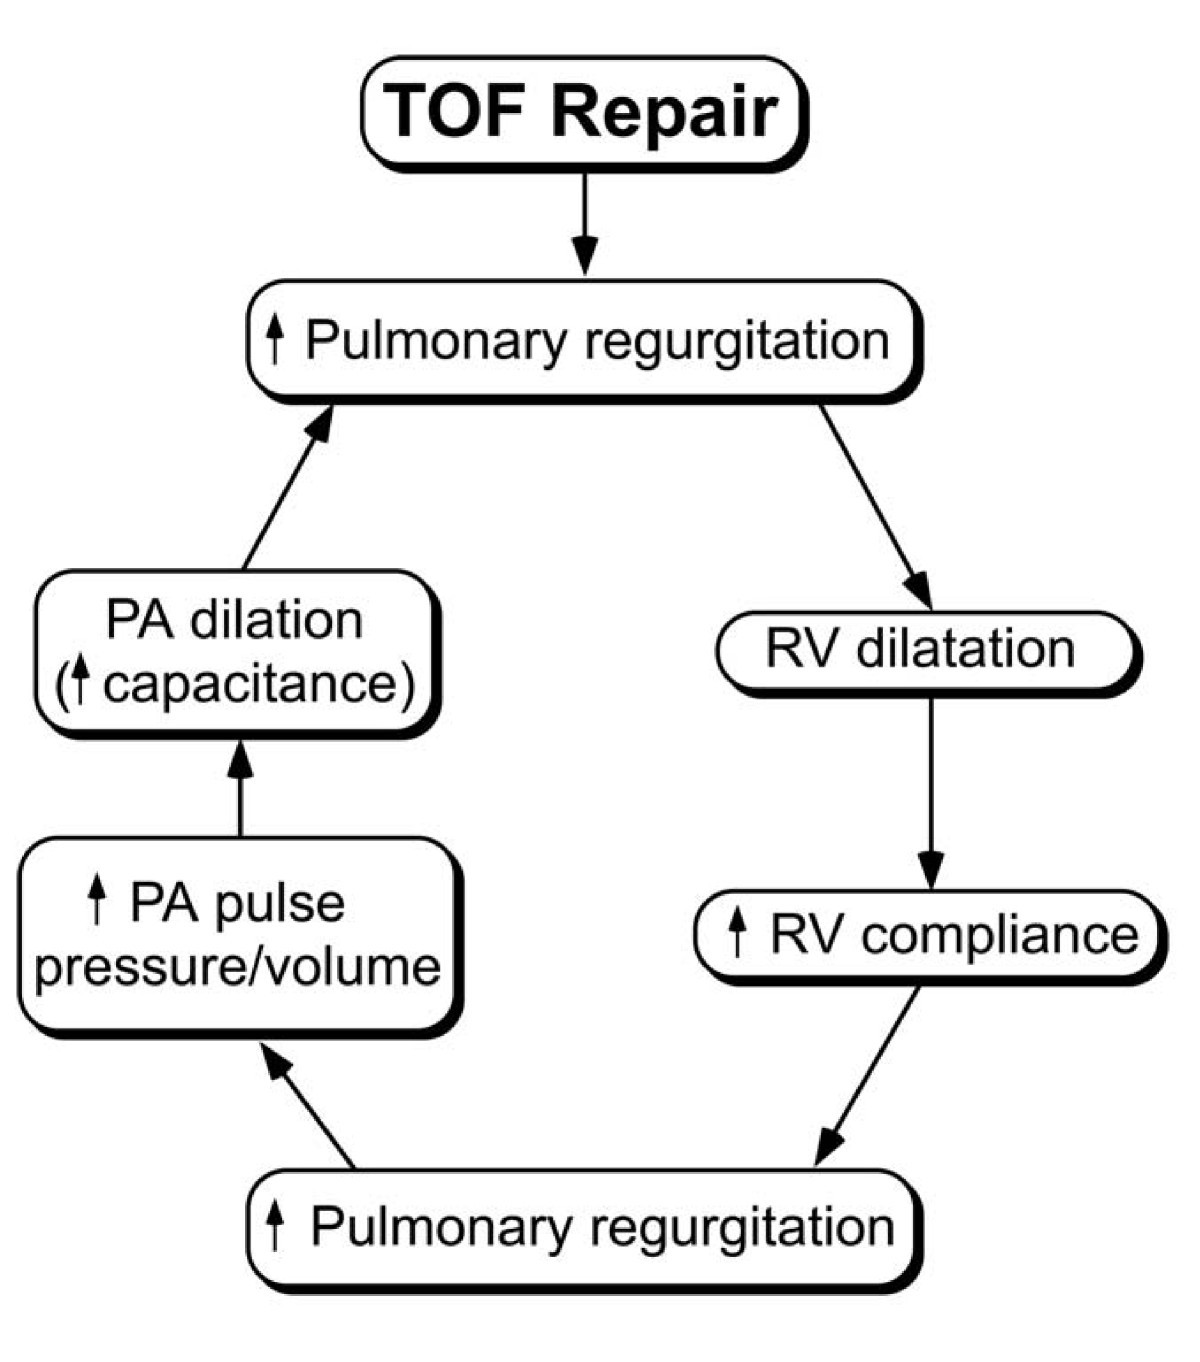 Repaired tetralogy of Fallot: the roles of cardiovascular magnetic on retinopathy of prematurity pathophysiology, ankylosing spondylitis pathophysiology, bronchiolitis pathophysiology, pleural effusion pathophysiology, unstable angina pathophysiology, mitral valve stenosis pathophysiology, cushing's syndrome pathophysiology, meningitis pathophysiology, nephrotic syndrome pathophysiology, aspiration pneumonia pathophysiology, cardiac tamponade pathophysiology, typhoid fever pathophysiology, sarcoidosis pathophysiology, atrial flutter pathophysiology, umbilical hernia pathophysiology, alzheimer's disease pathophysiology, chronic obstructive pulmonary disease pathophysiology, mitral valve regurgitation pathophysiology, aortic stenosis pathophysiology, cardiogenic shock pathophysiology,